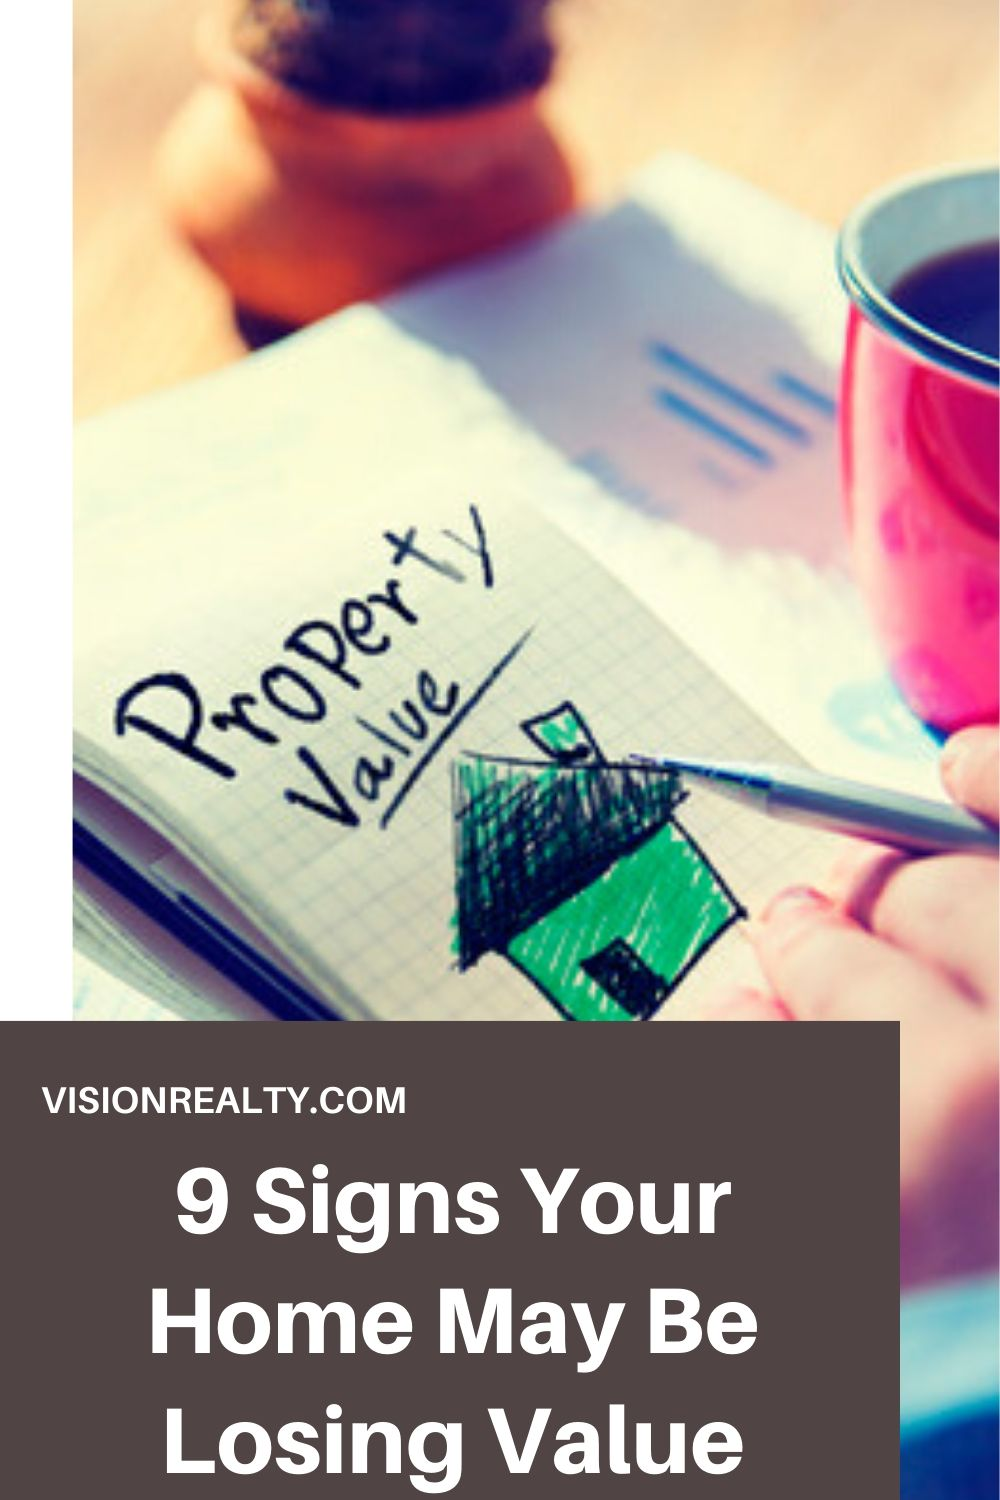 9 Signs Your Home May Be Losing Value